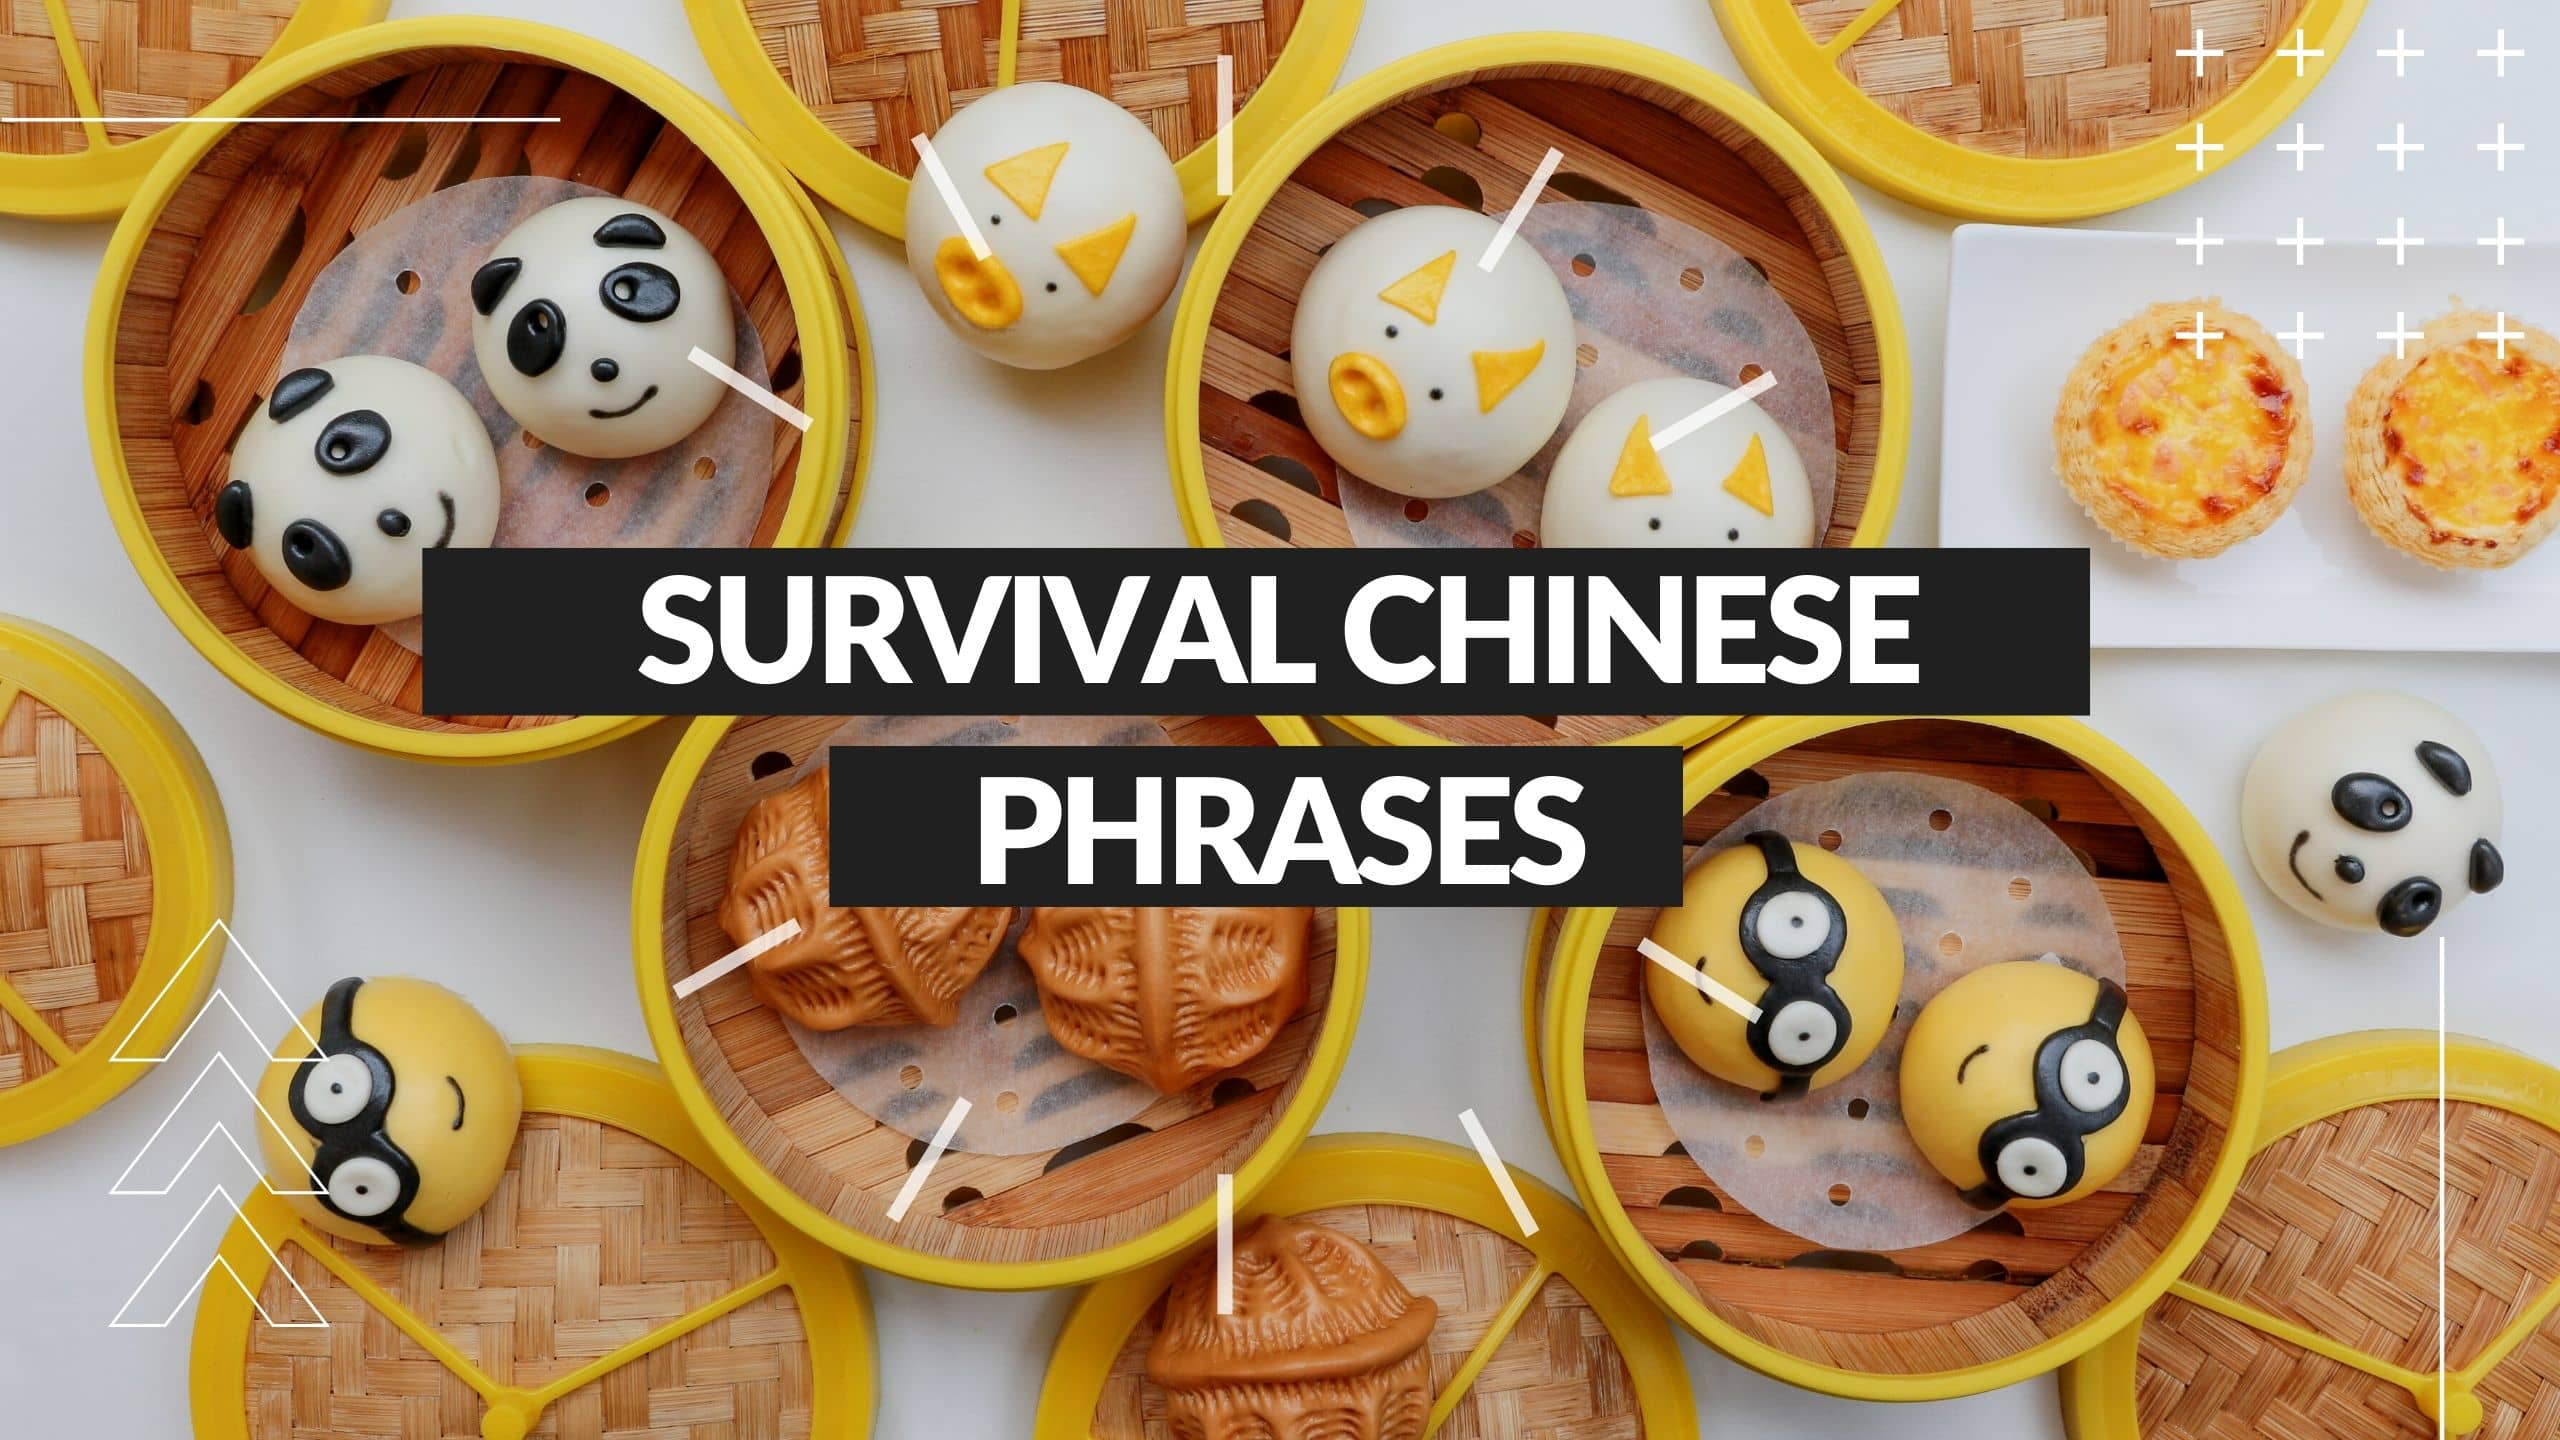 Survival Chinese Phrases